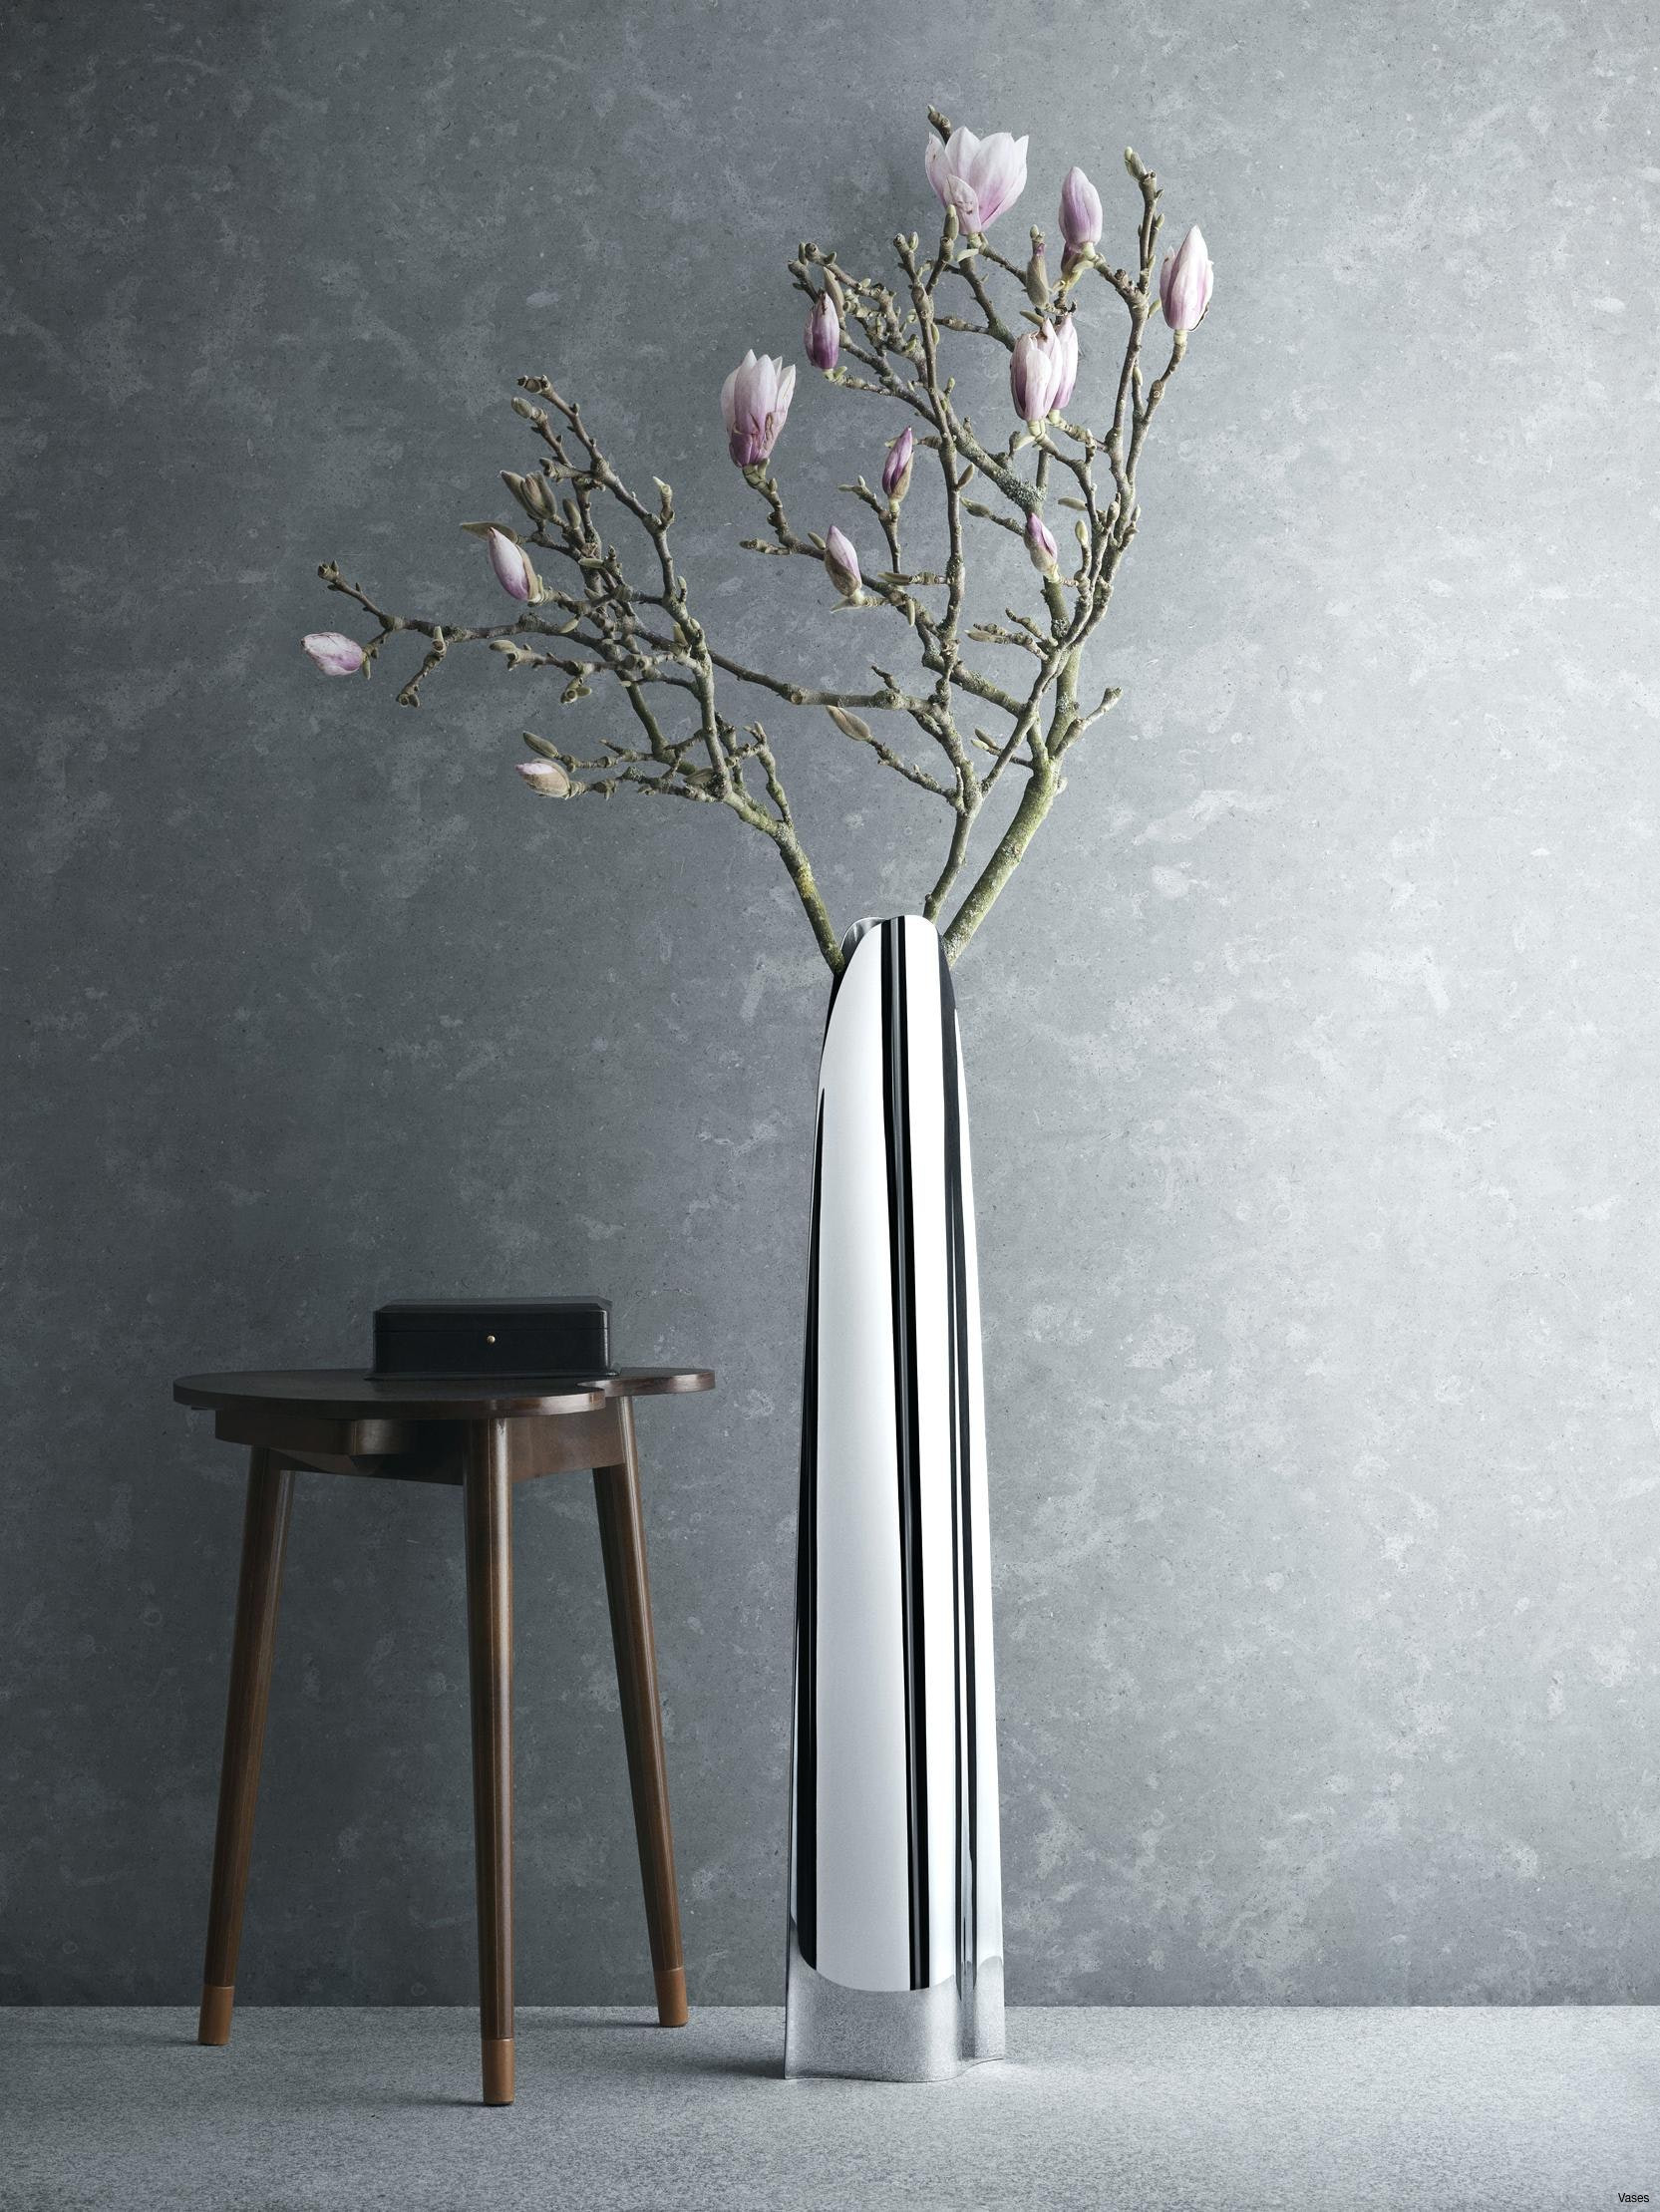 Fake Flowers for Tall Floor Vases Of Decorating Ideas for Tall Vases Fresh Greens In A Tall Vase Silk with Regard to Decorating Ideas for Tall Vases Lovely Interesting Black Tall Floor Vase for Exciting Living Room Design